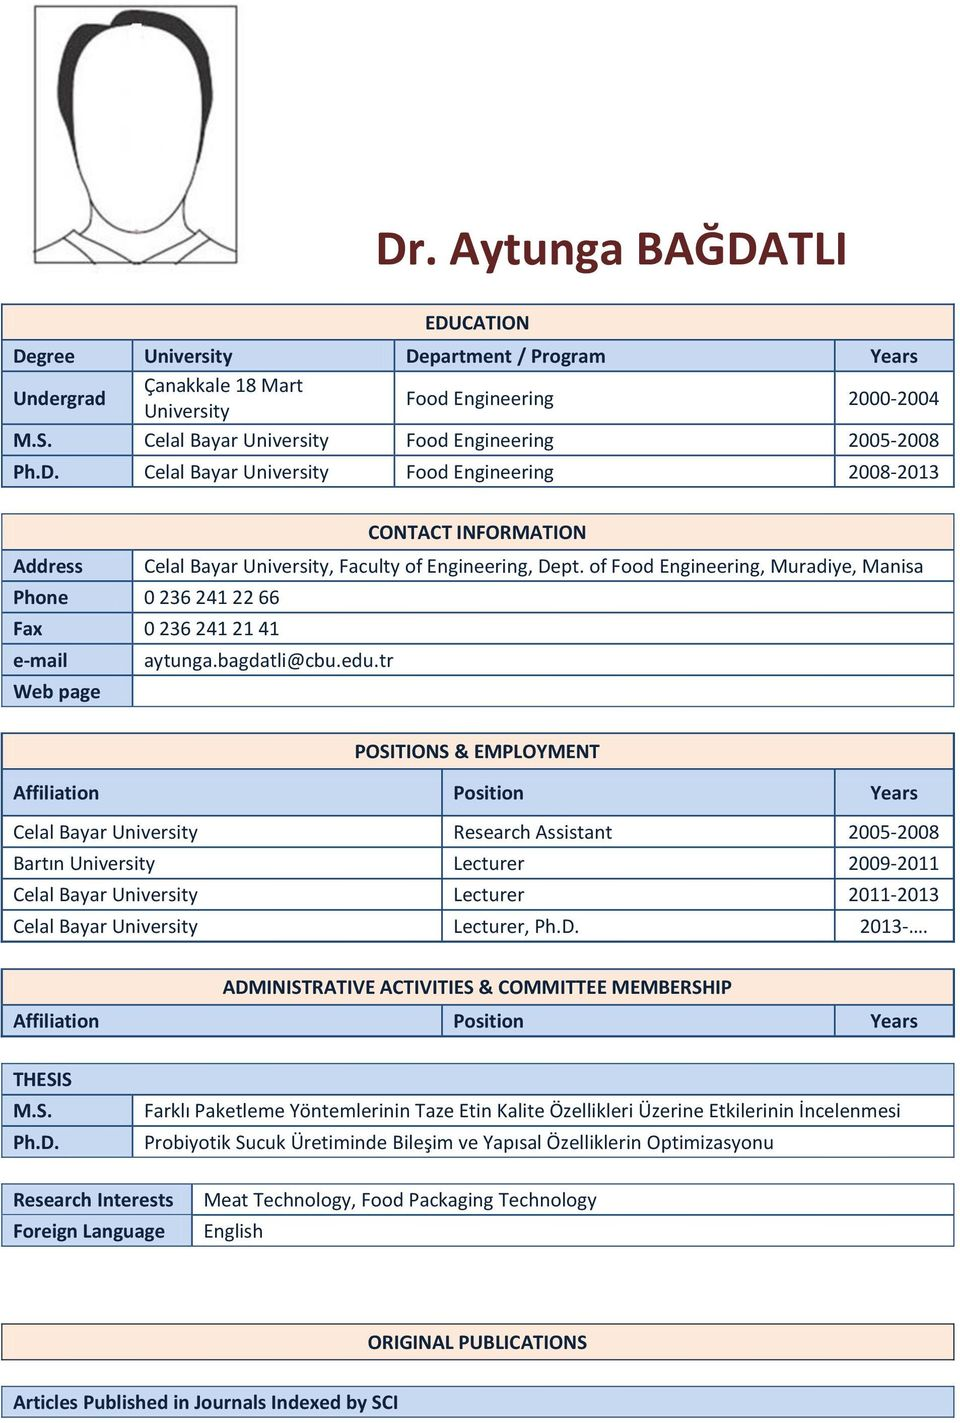 tr Web page POSITIONS & EMPLOYMENT Affiliation Position Celal Bayar University Research Assistant 00-00 Bartın University Lecturer 009-0 Celal Bayar University Lecturer 0-0 Celal Bayar University